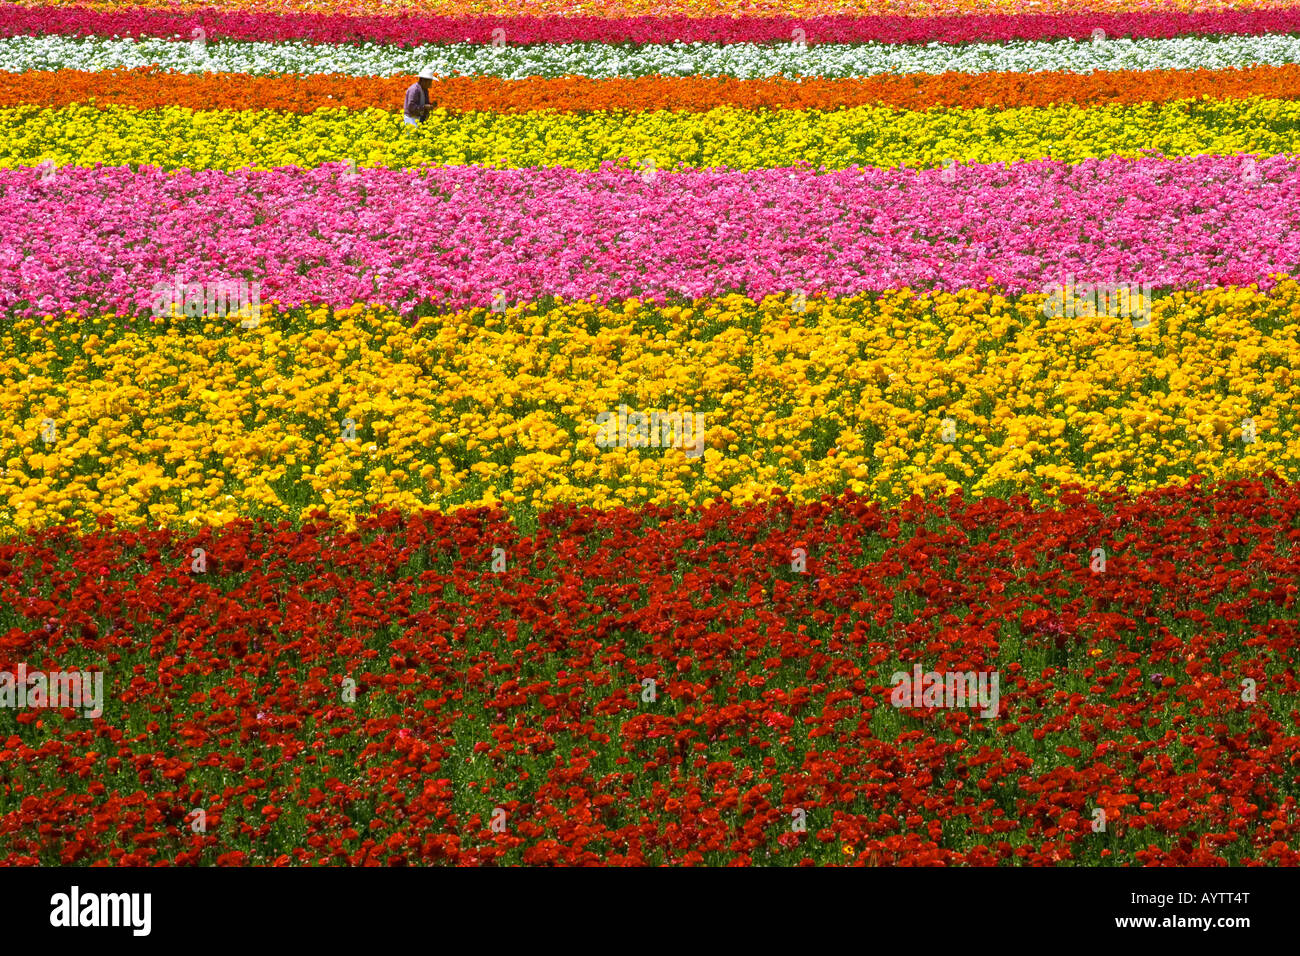 Bud picking, fields, flowers, flora, color, bright, day, sunny, San Diego, California, Carlsbad - Stock Image